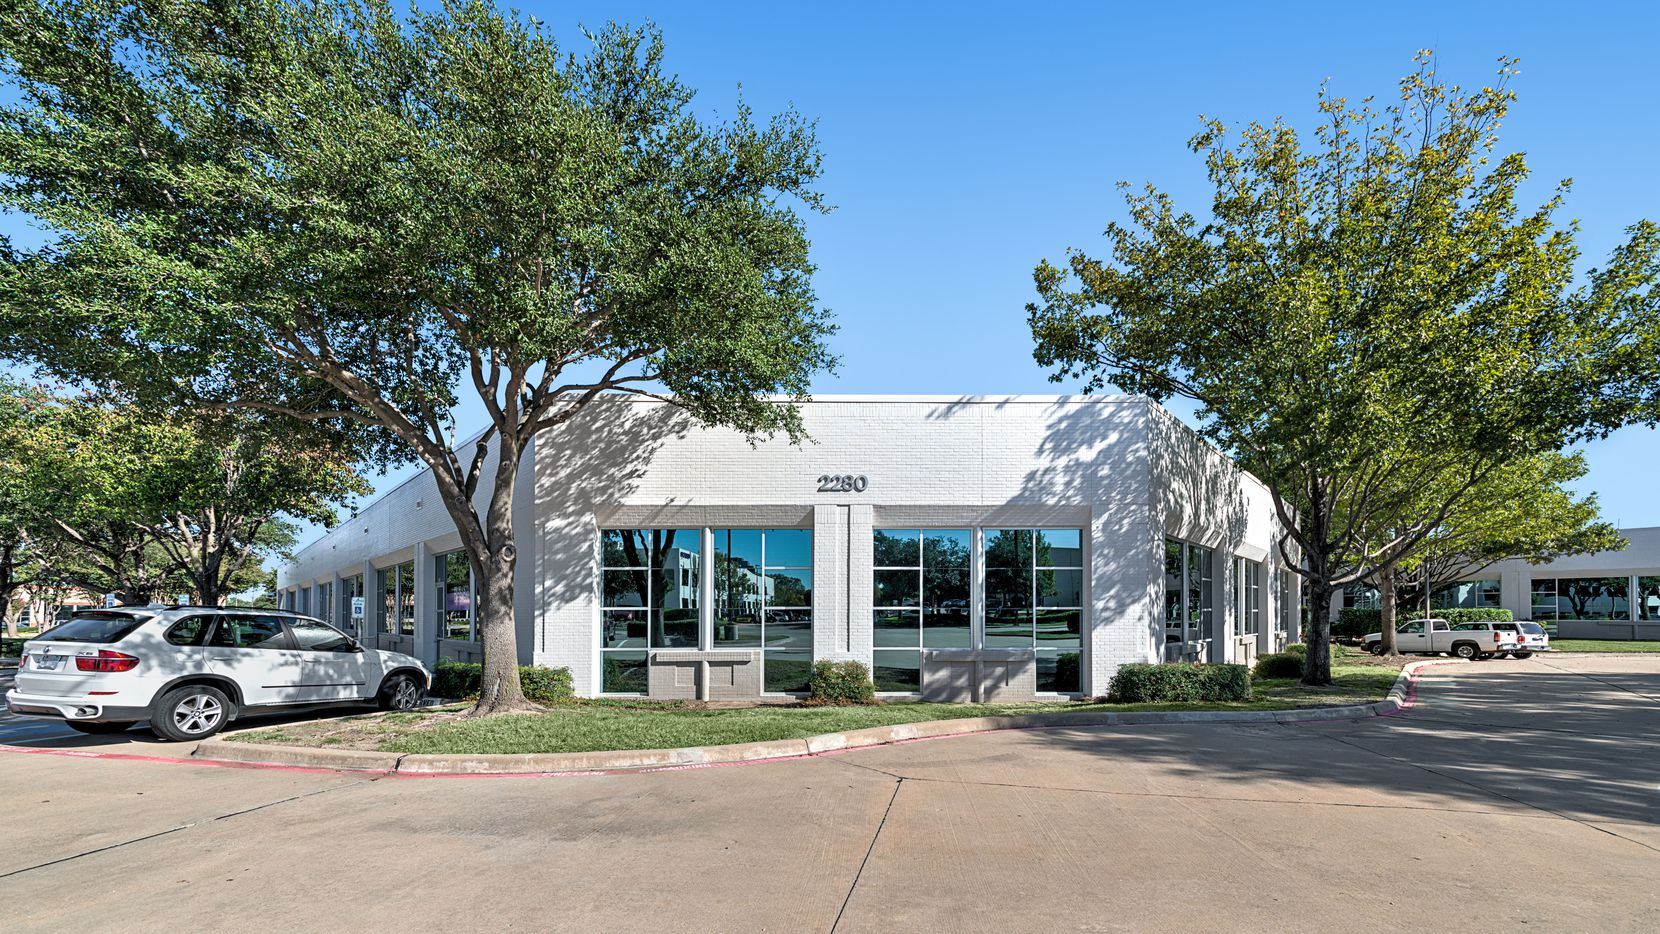 Legrand Building Control Systems has leased 42,000 square-foot office at Campbell Creek Pavilion in Richardson.